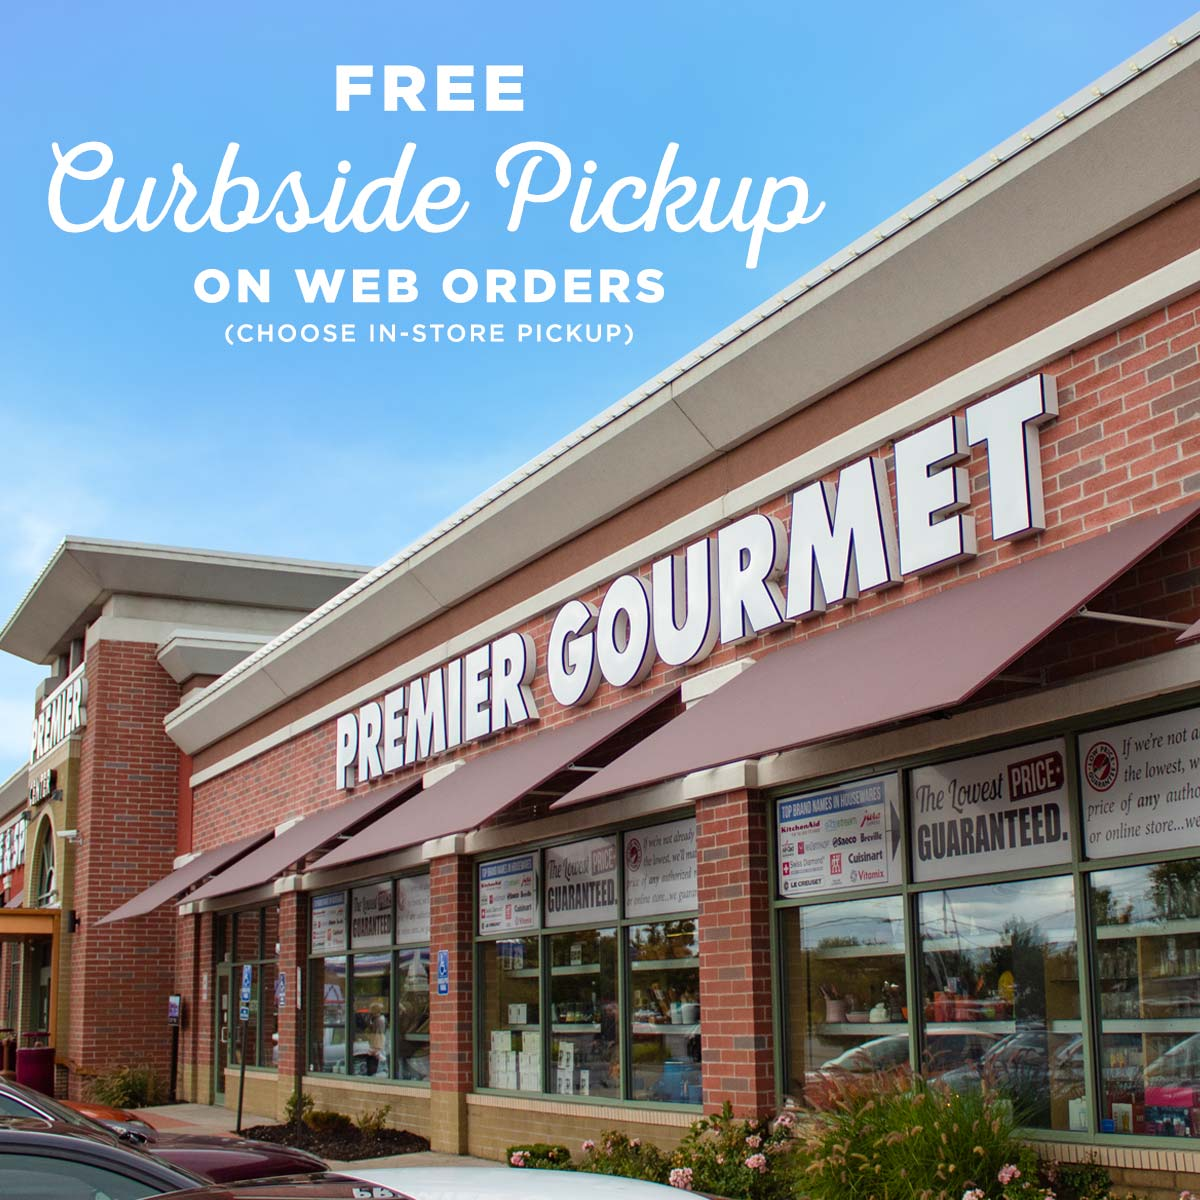 Now Offering Free Curbside Pickup on Web Orders